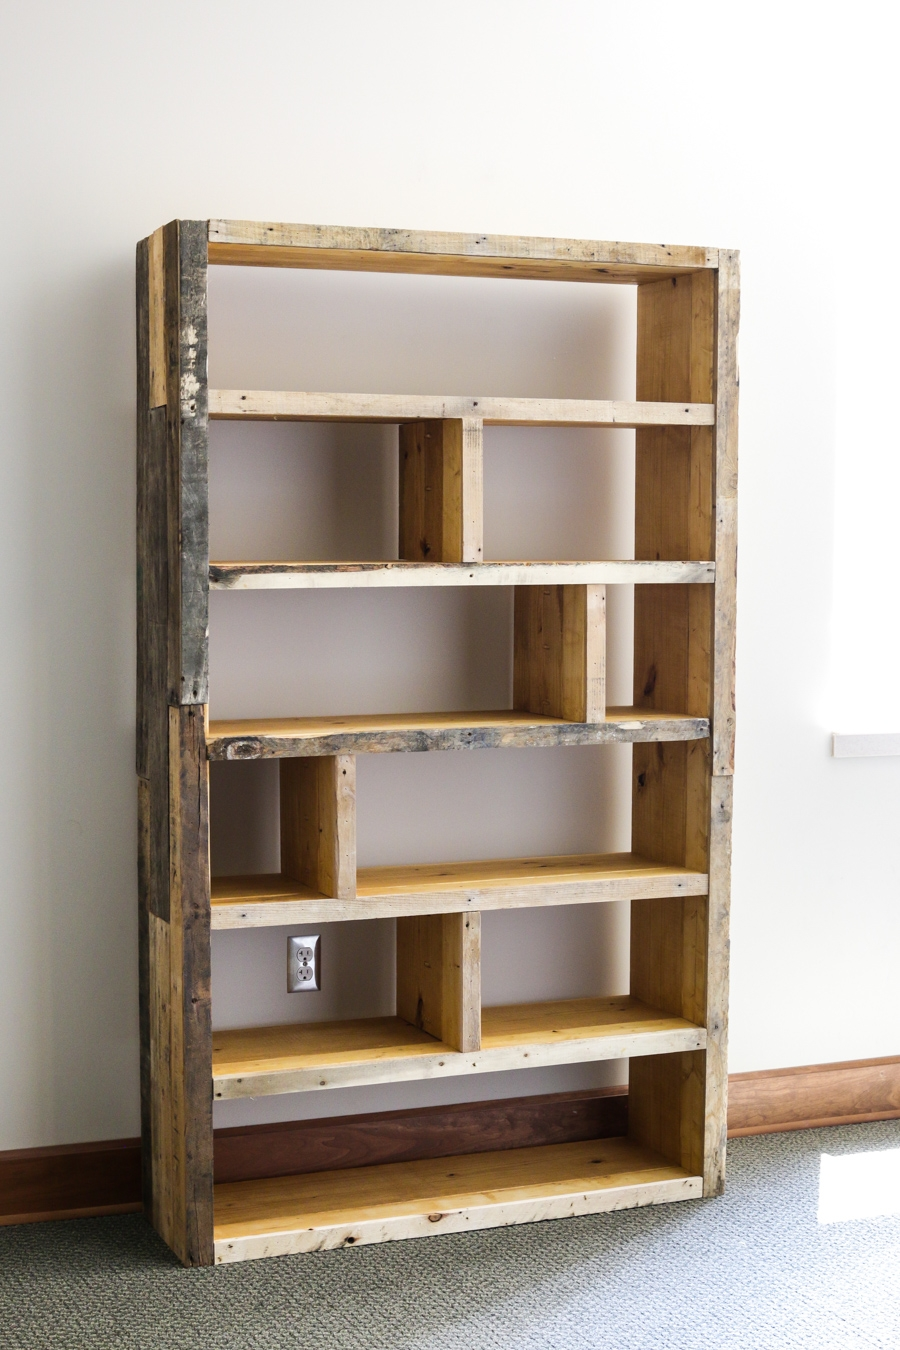 Diy Rustic Pallet Bookshelf In Bookshelf (#11 of 15)